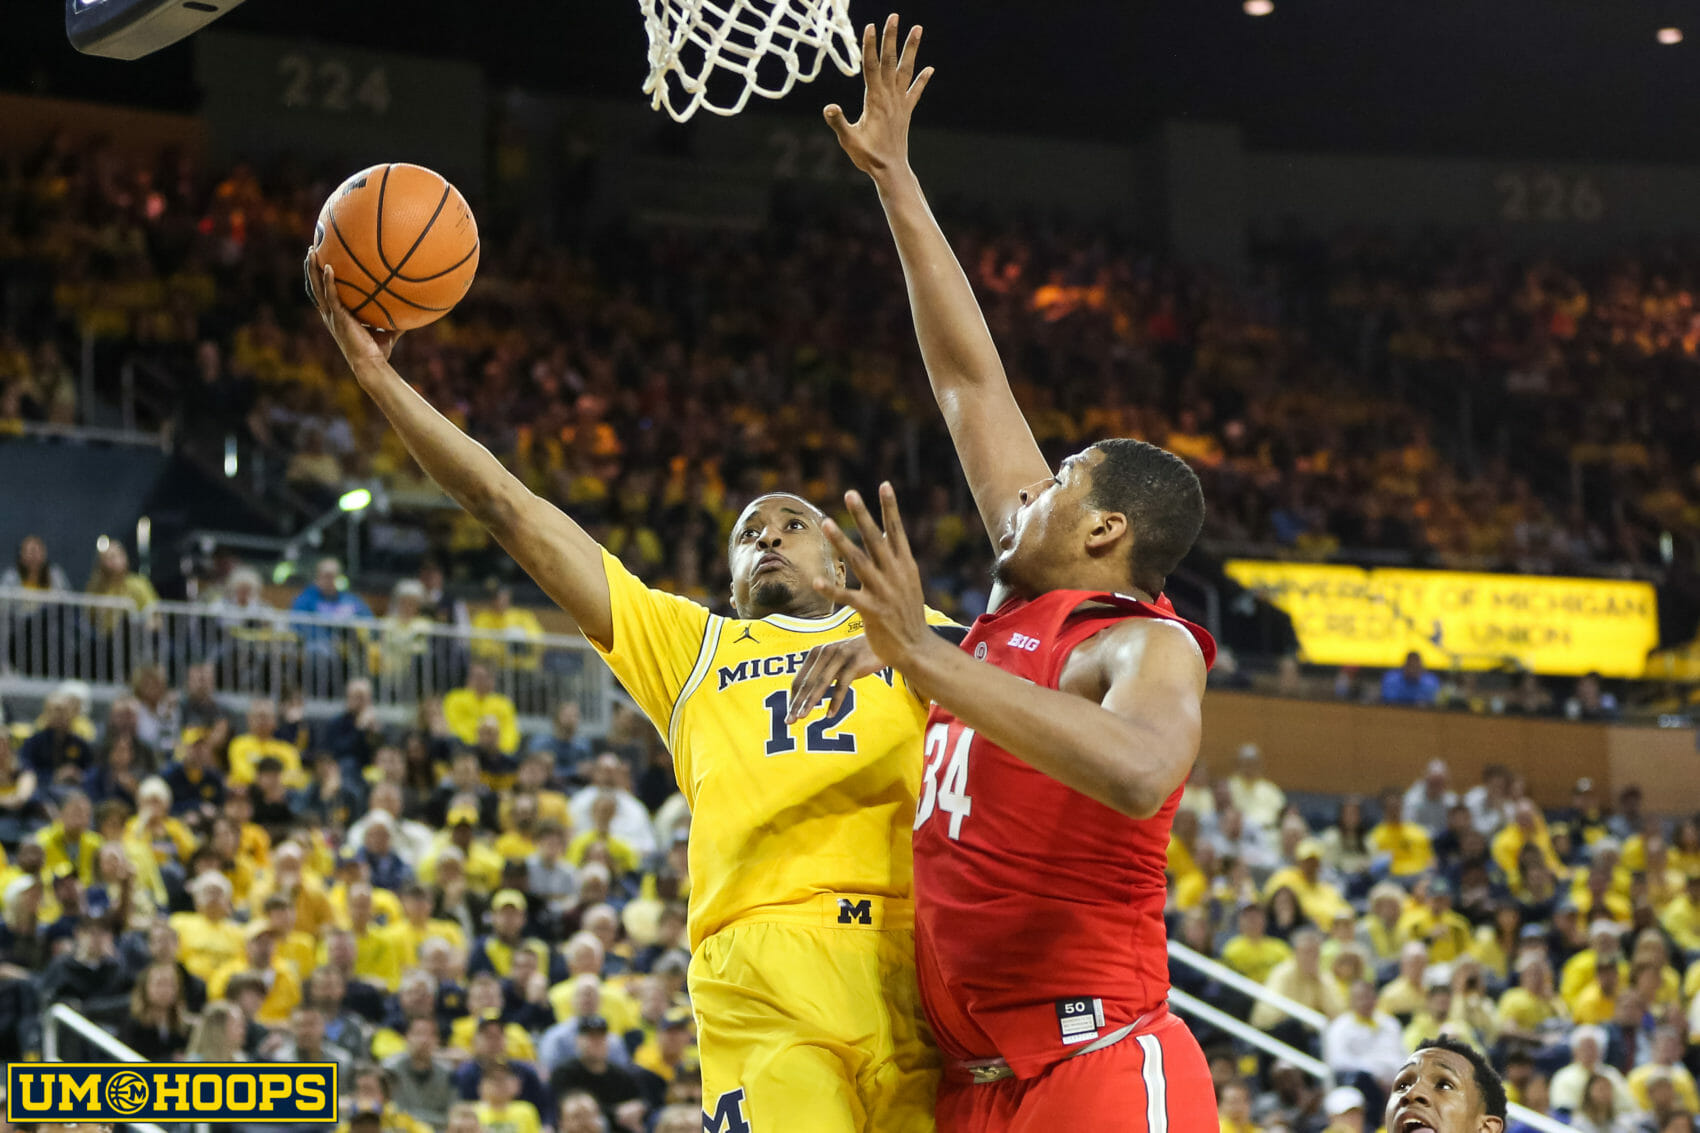 Michigan 74, Ohio State 62-19